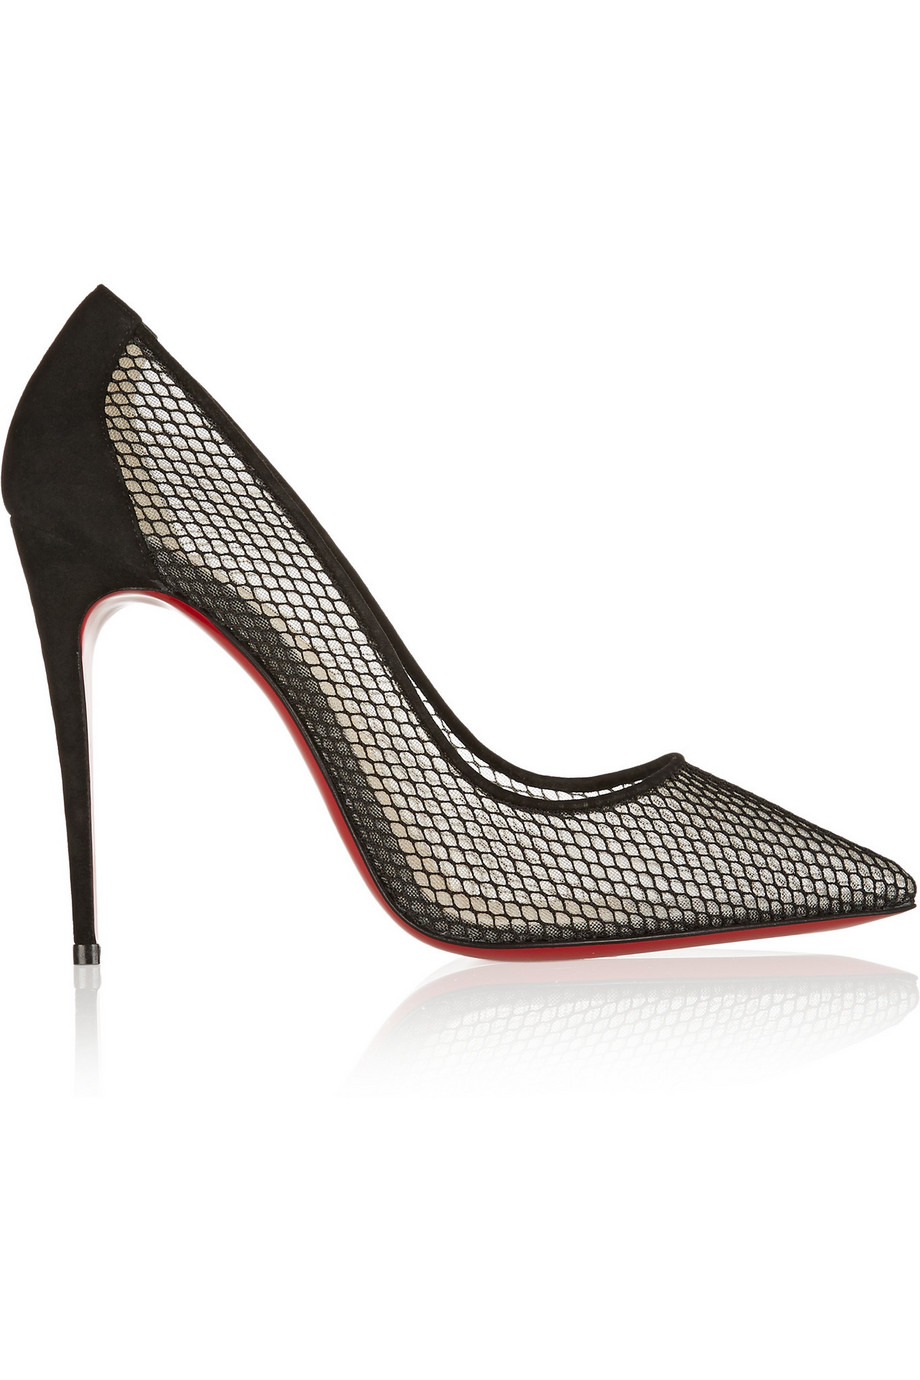 Christian Louboutin Follies Resille 100 Suede-Trimmed Mesh Pumps, Black, Women's US Size: 4, Size: 34.5